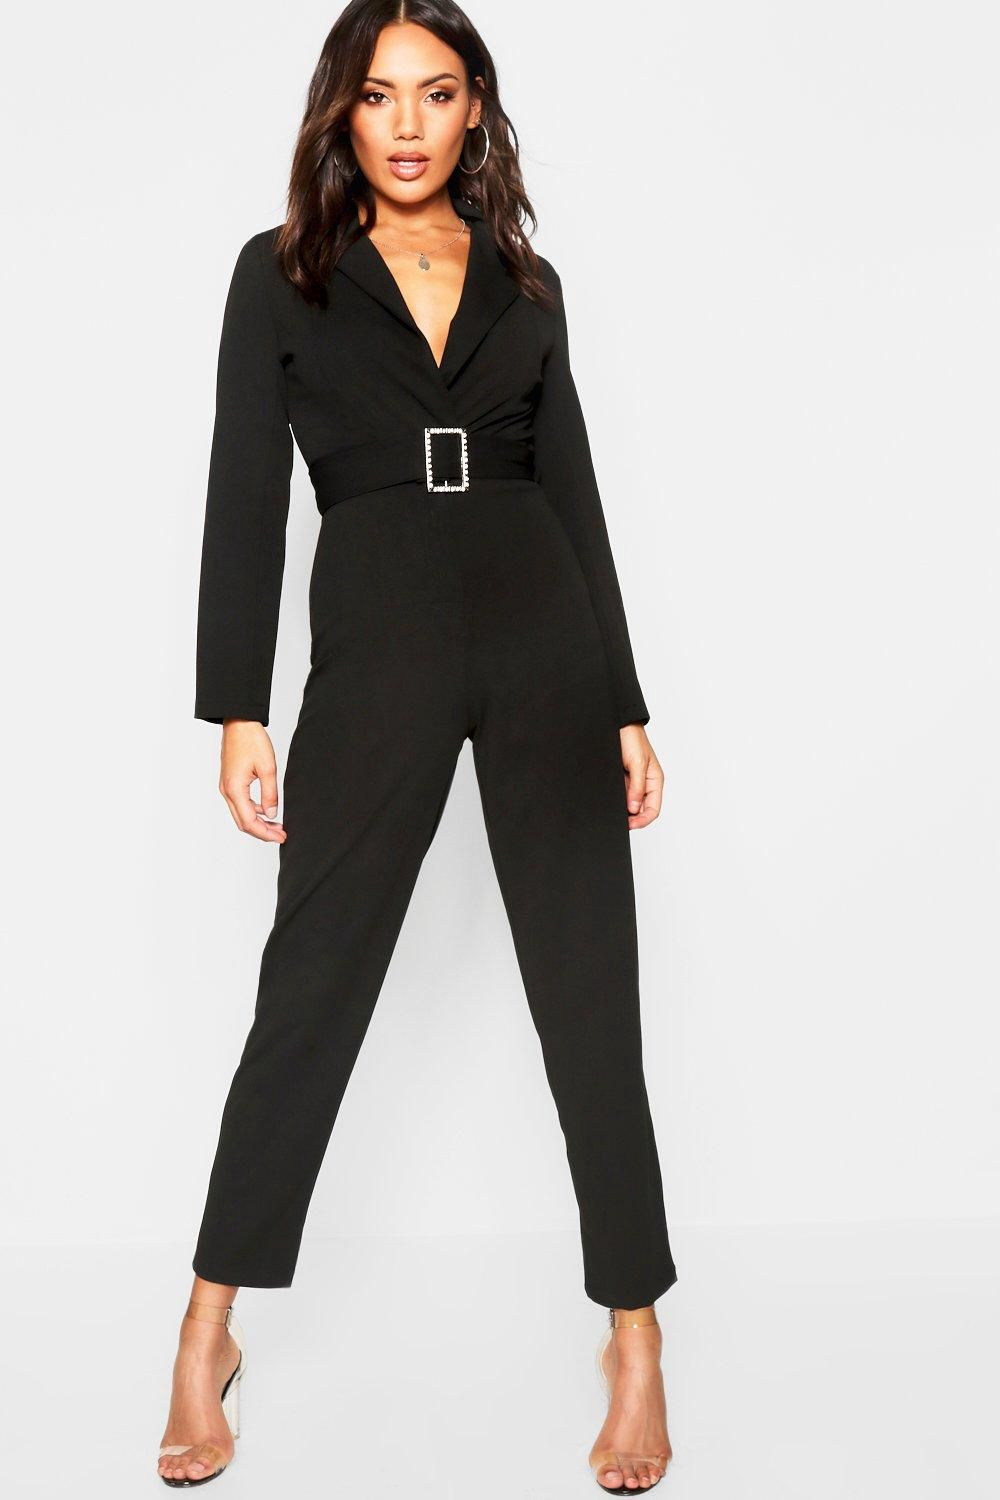 c8cd223a5d0d Diamante Buckle Belted Jumpsuit - Boohoo